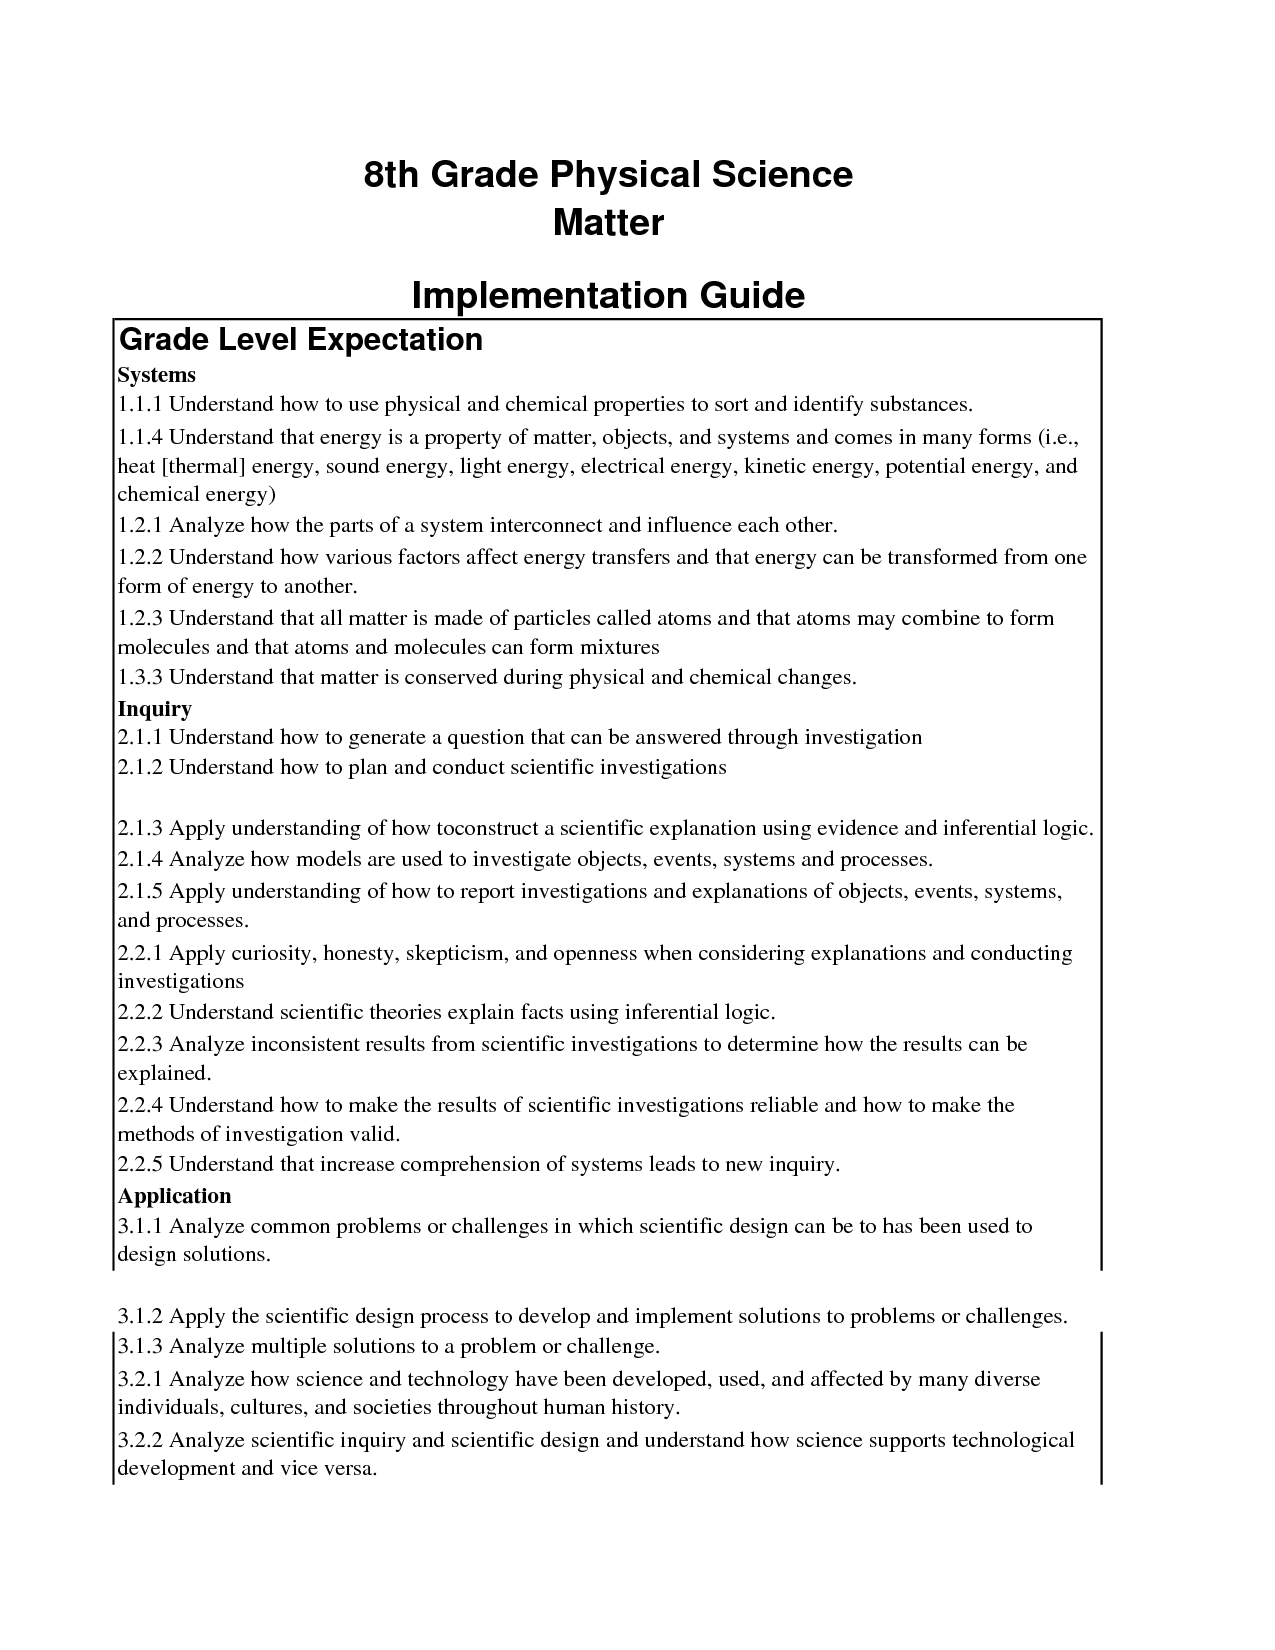 Worksheets Science Worksheets For 8th Grade Babyhunters Free Worksheets Amp Printable